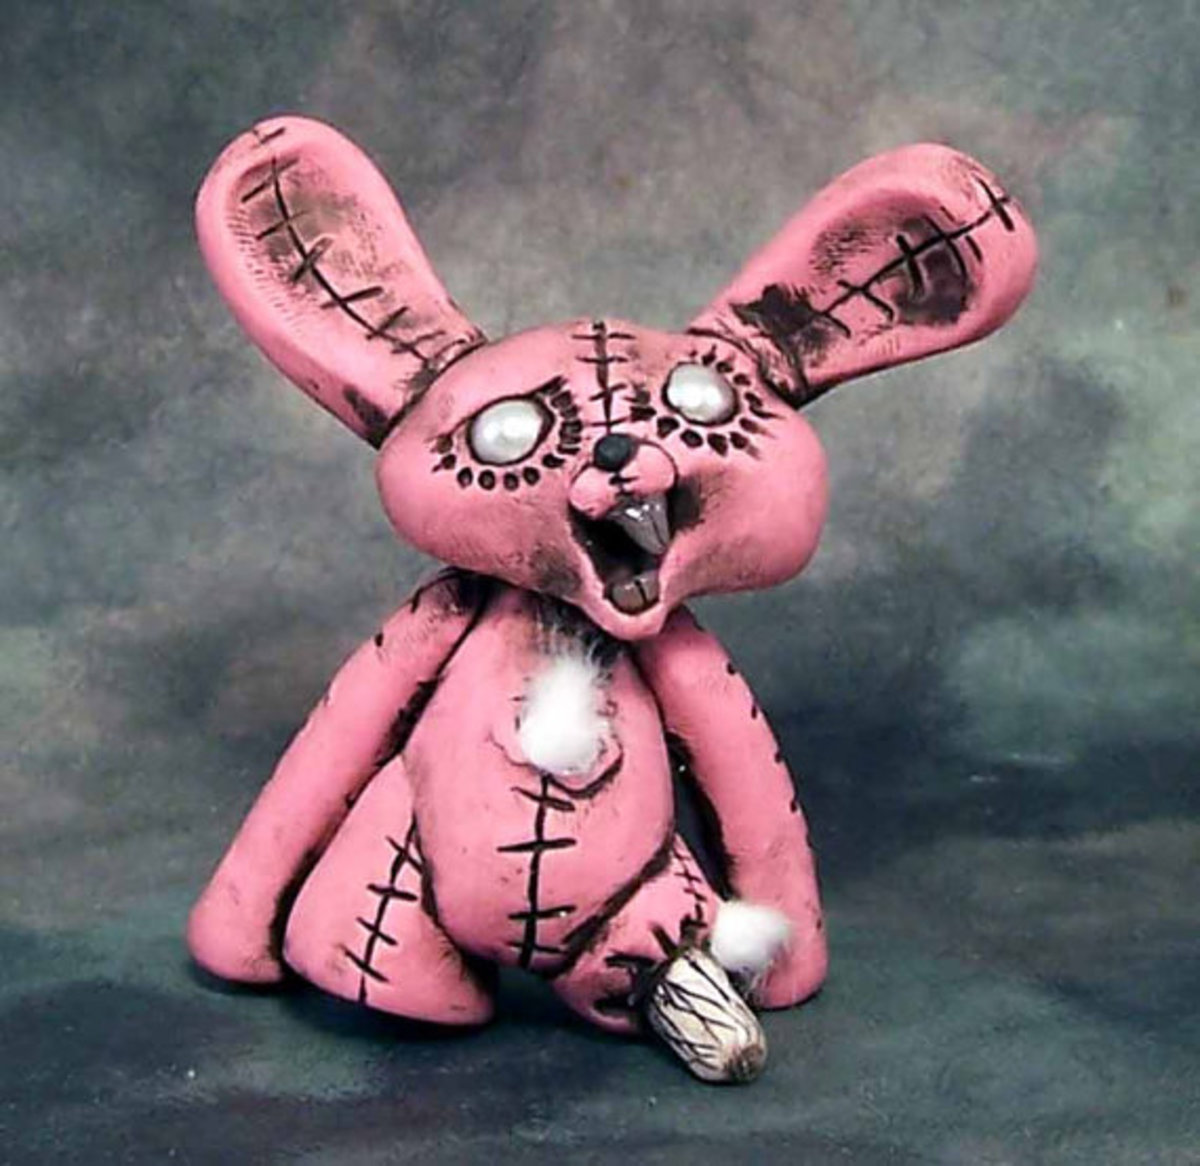 This is no Velveteen Rabbit that's for sure!